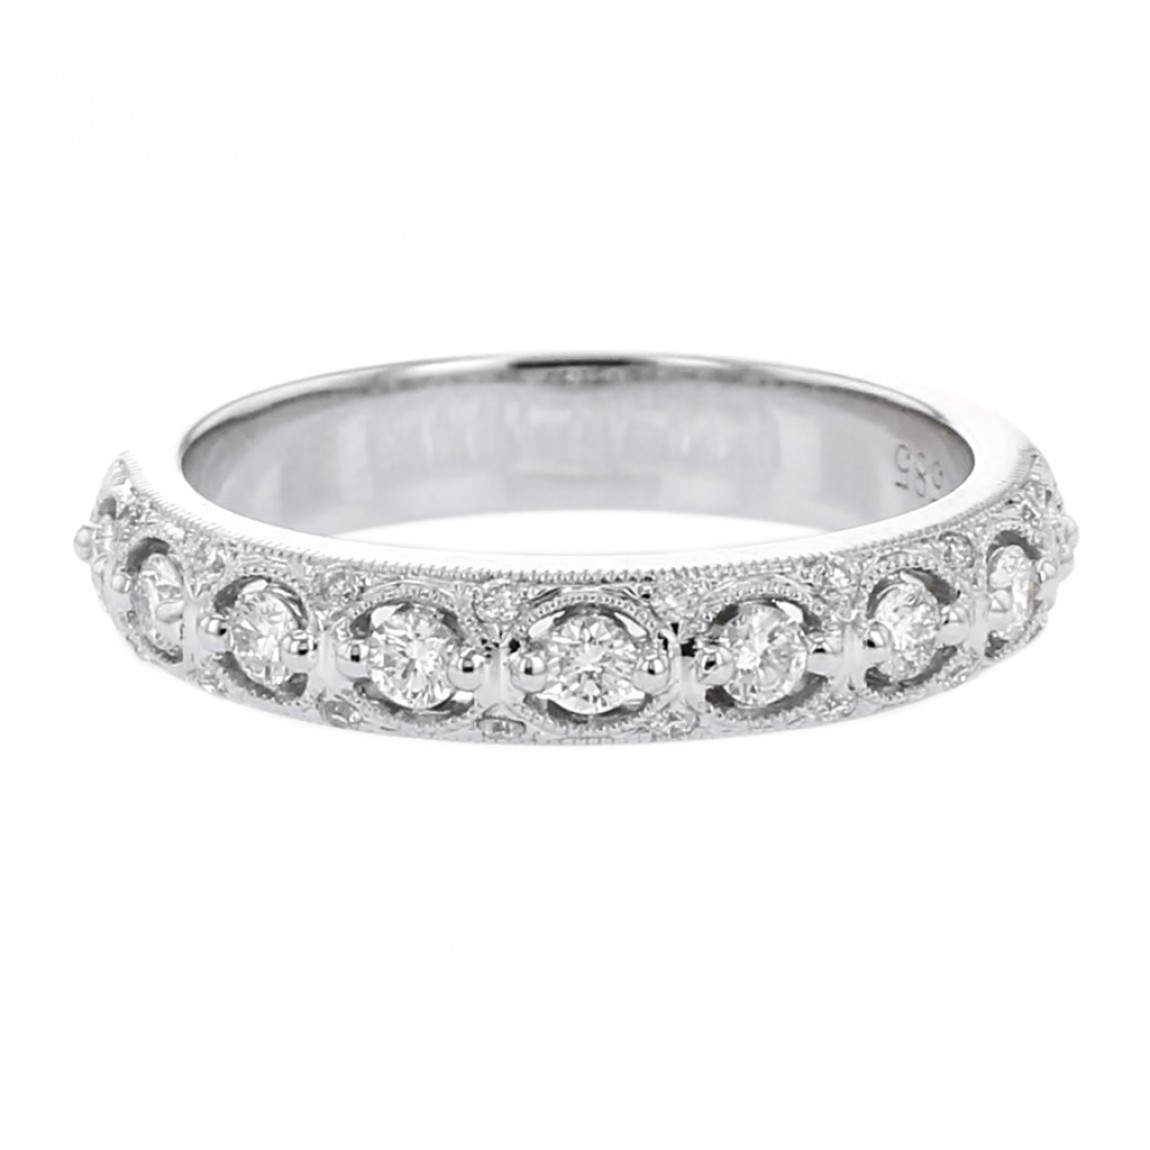 Diamond Milgrain Filigree Wedding Band, 14K White Gold,  (View 12 of 25)